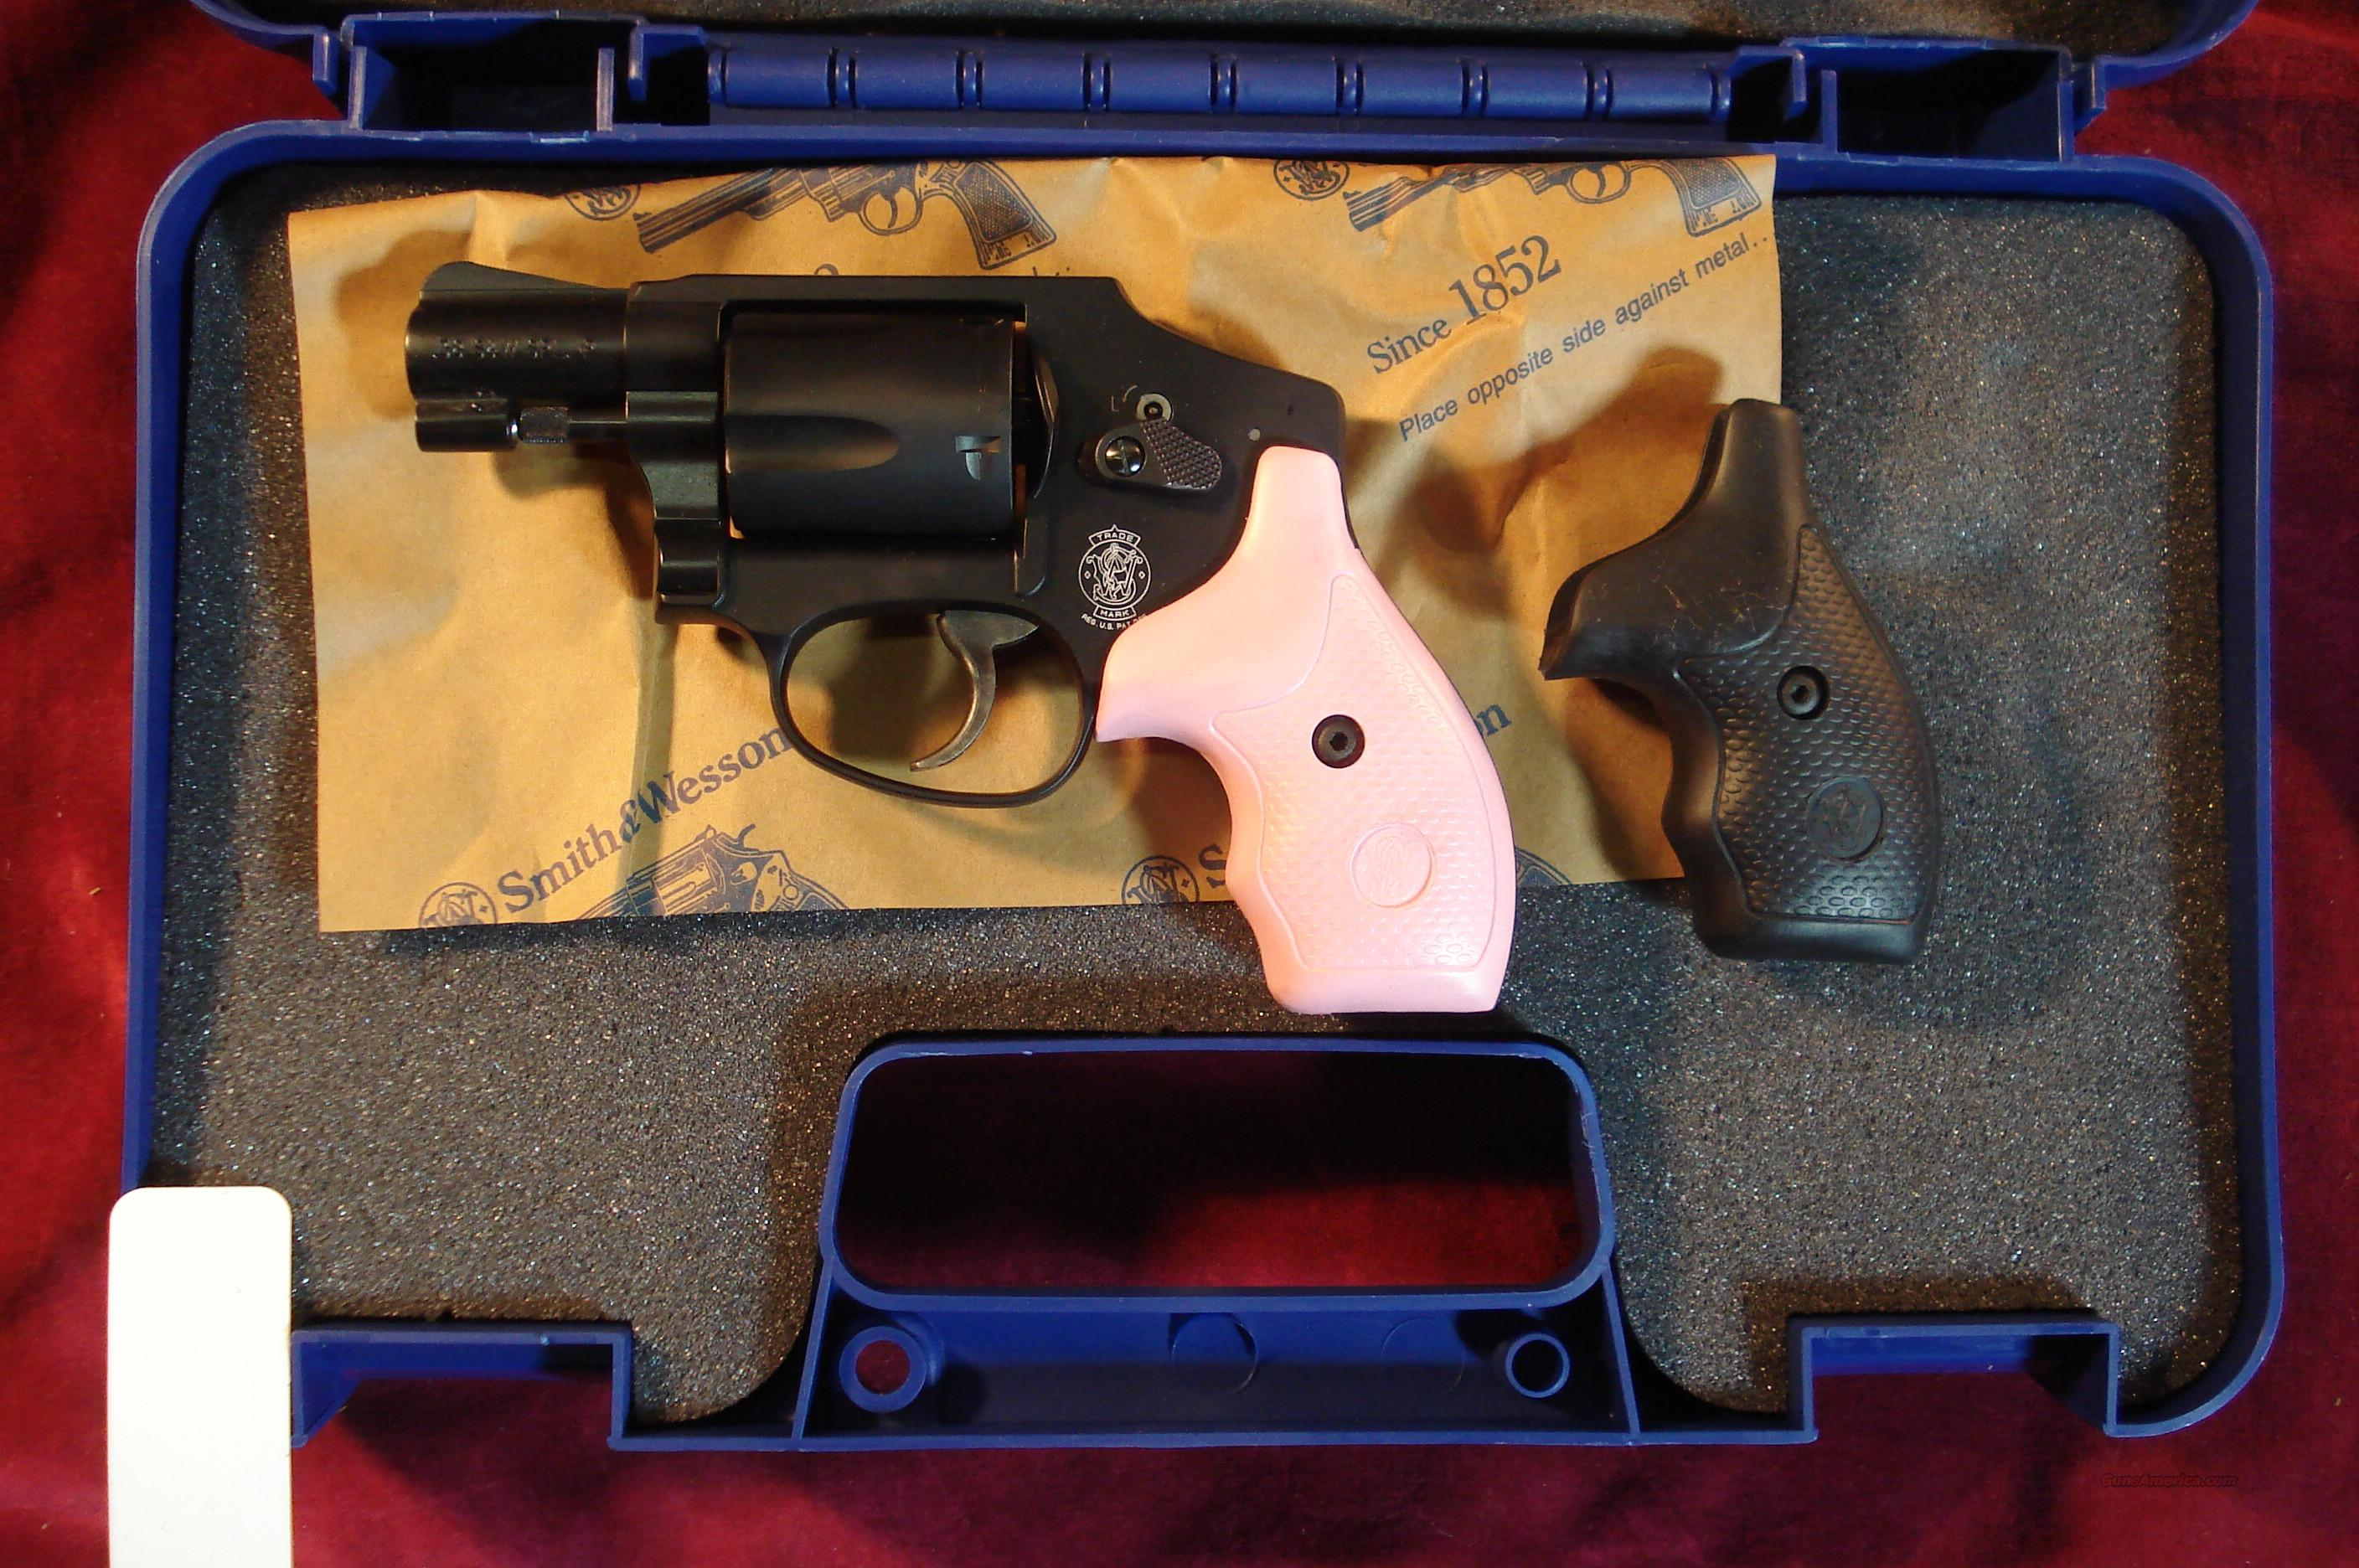 SMITH AND WESSON 442, 38+P CALIBER W/PINK & BLACK GRIPS NEW  Guns > Pistols > Smith & Wesson Revolvers > Pocket Pistols